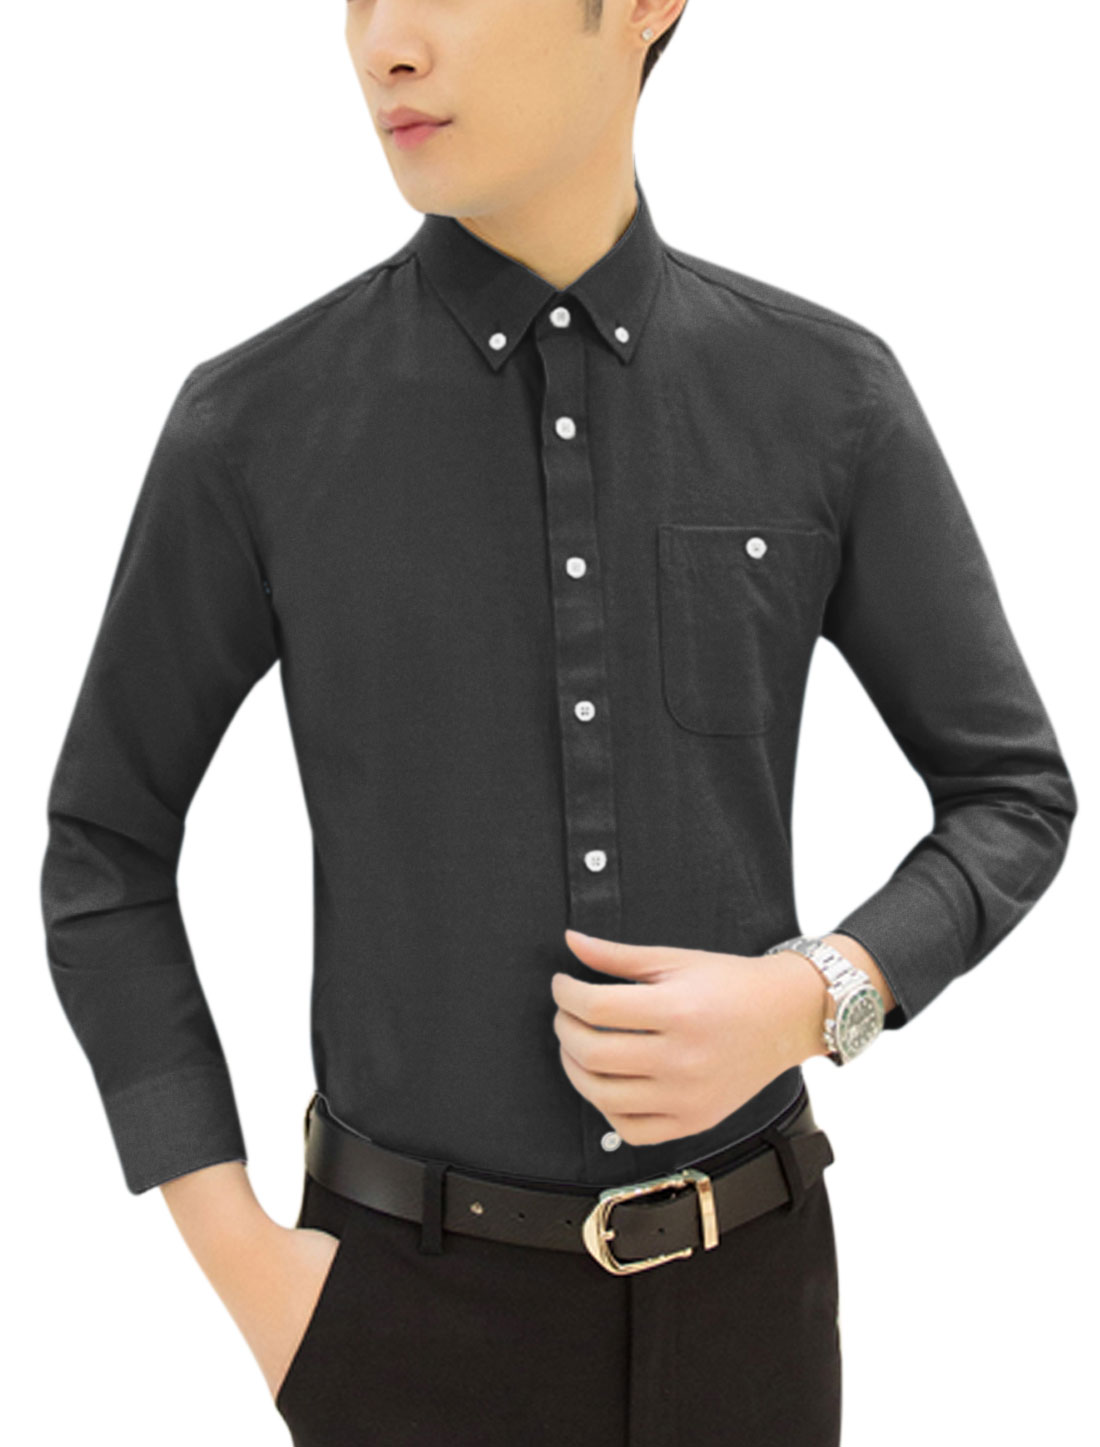 Man Long Sleeve Pocket Button Down Slim Fit Tops Shirts Black M